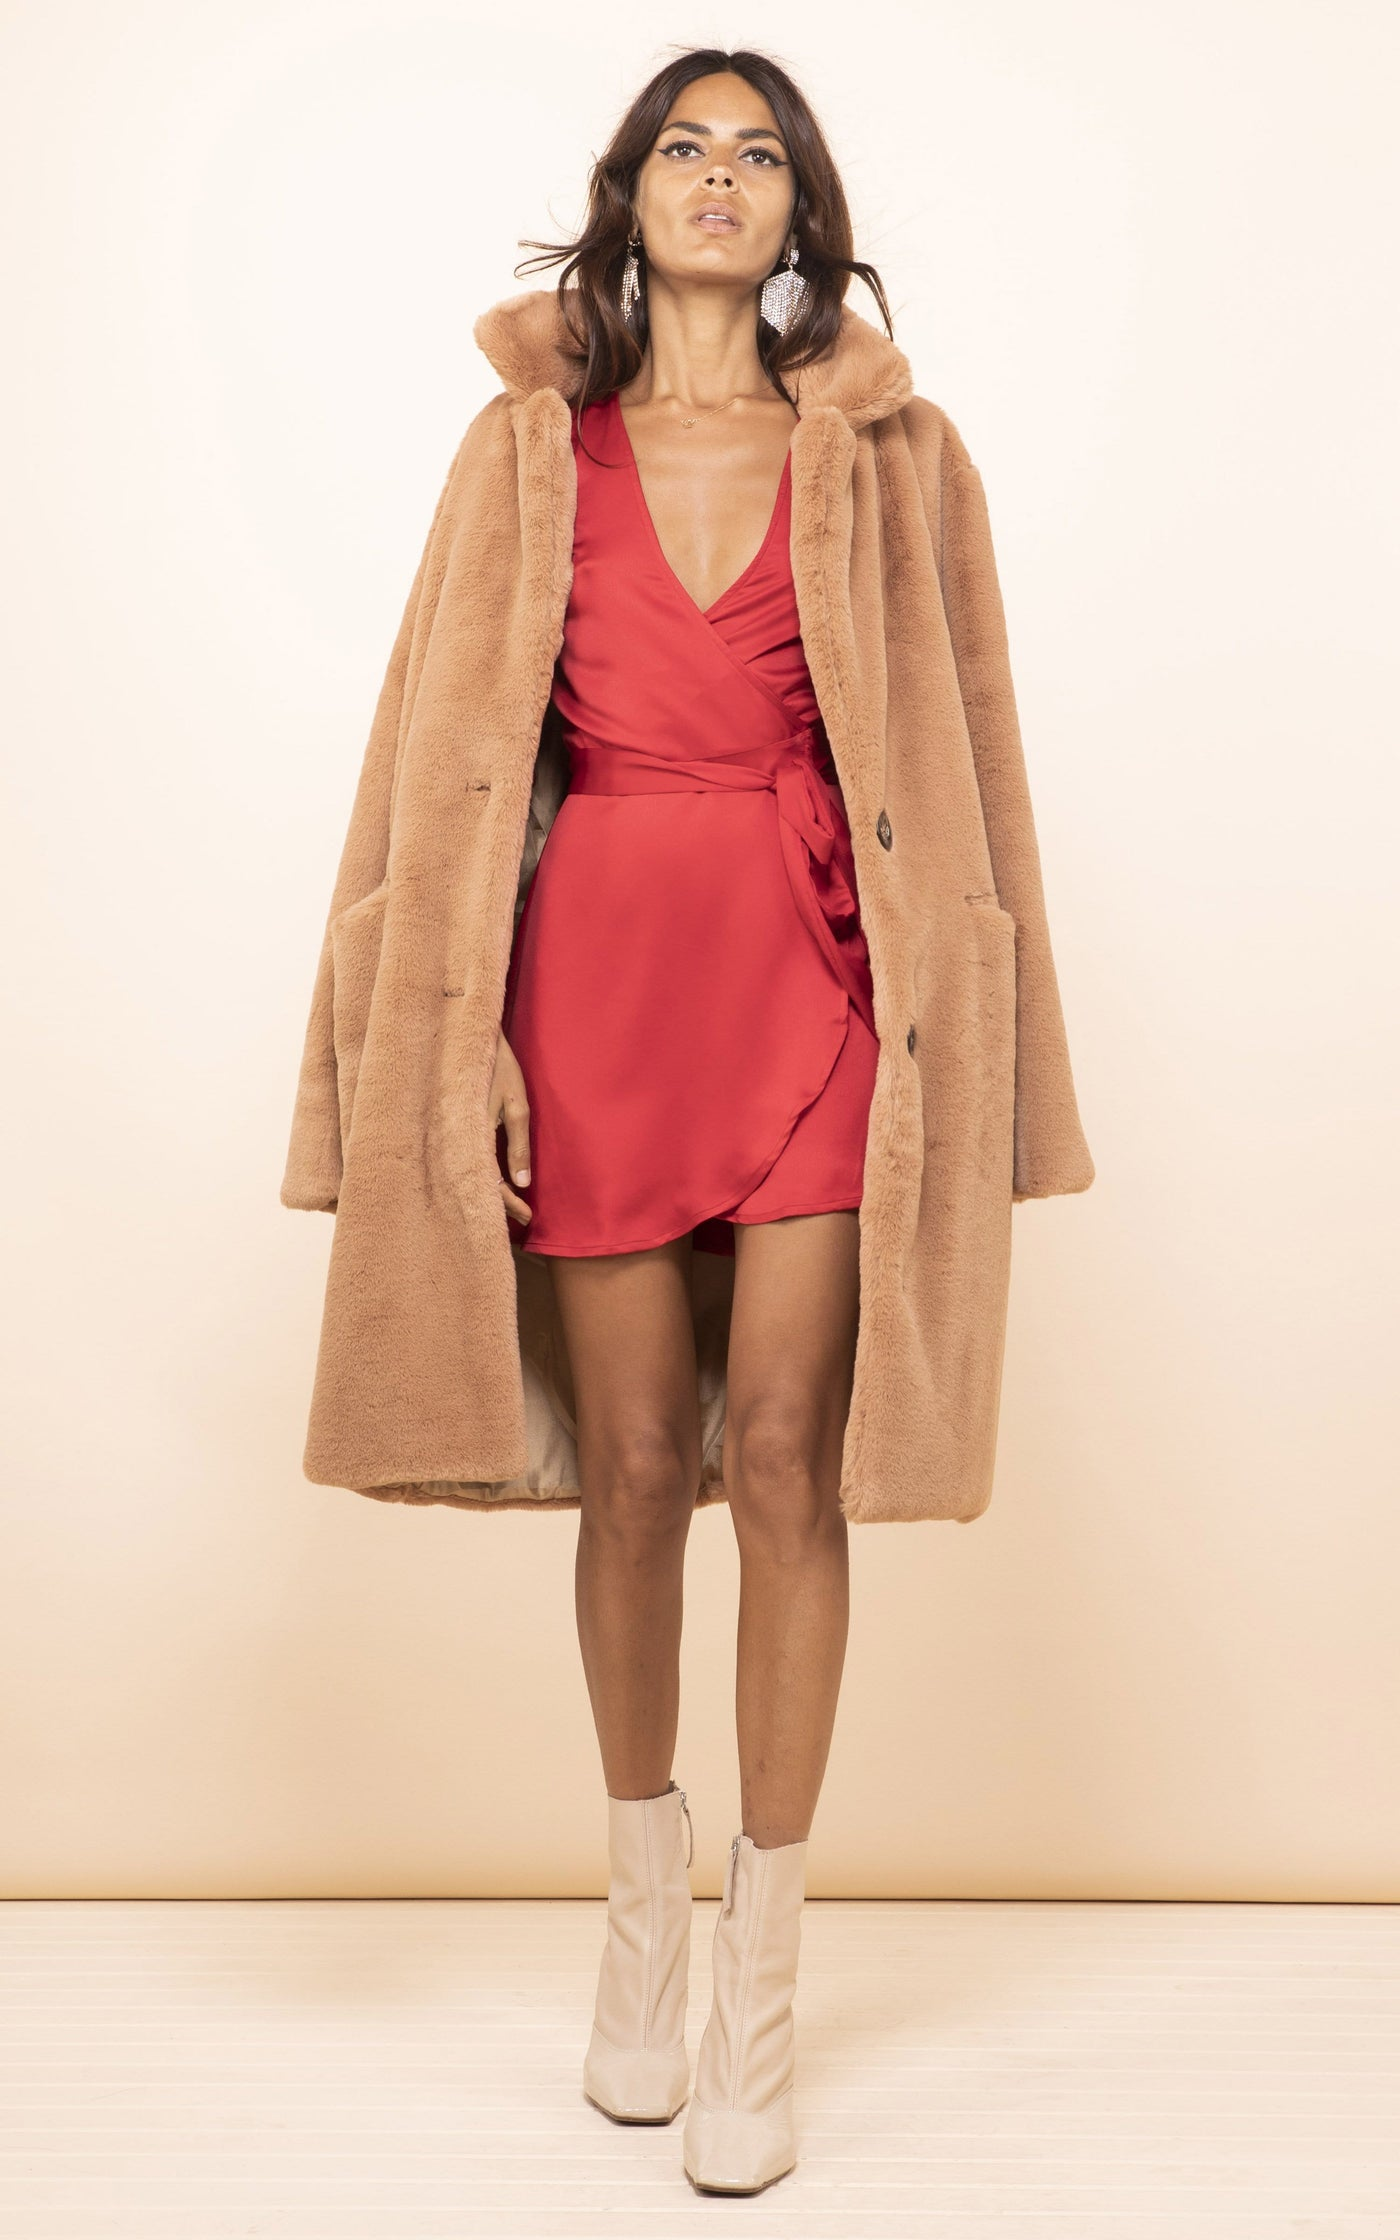 Dancing Leopard model walks forward wearing Marley Mini Dress in red with tan coat